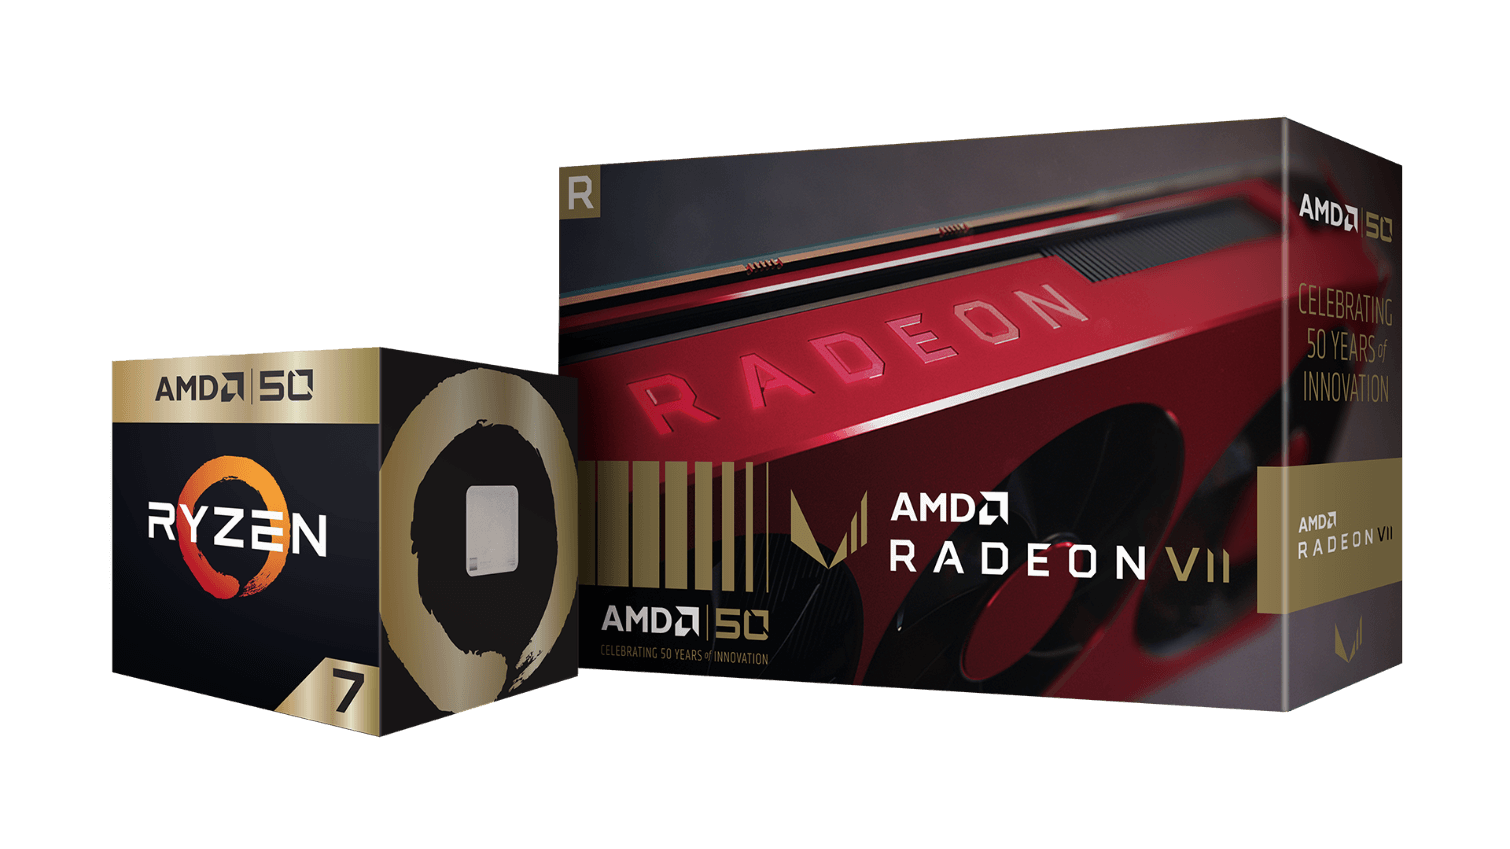 AMD confirms Gold Editions of Ryzen 7 2700X and Radeon VII, alongside free games and more